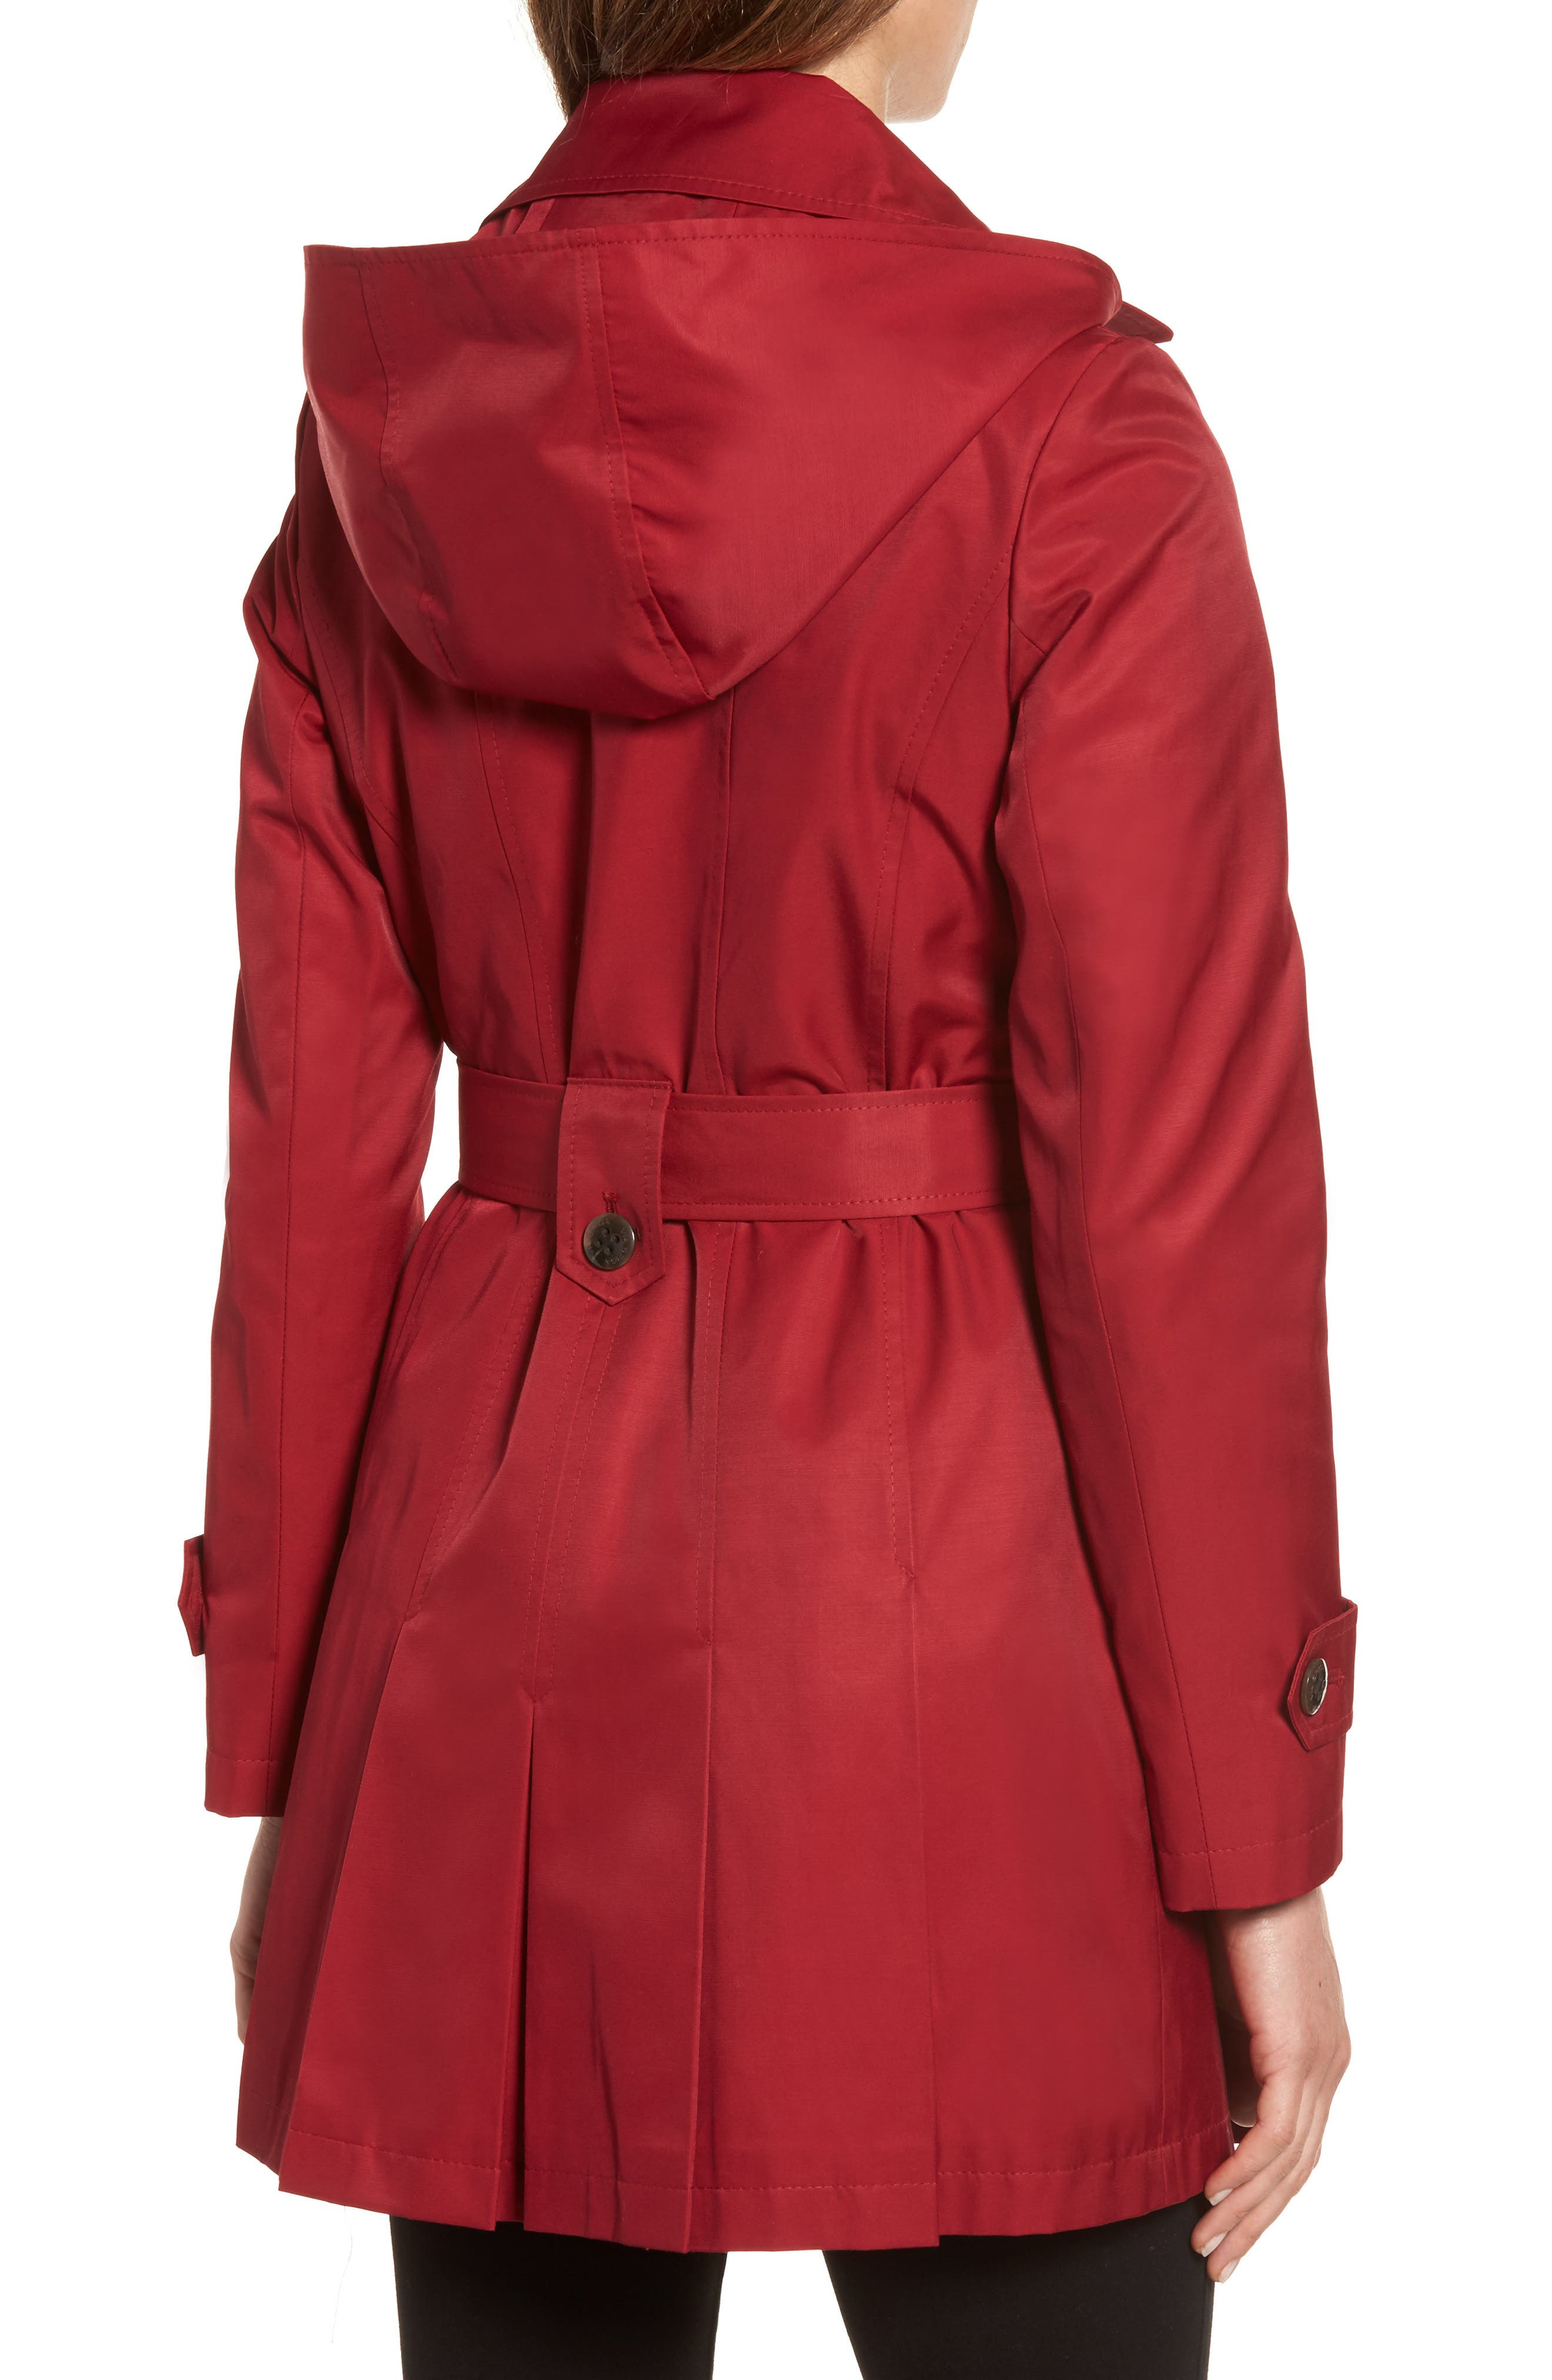 'Scarpa' Hooded Single Breasted Trench Coat,                             Alternate thumbnail 10, color,